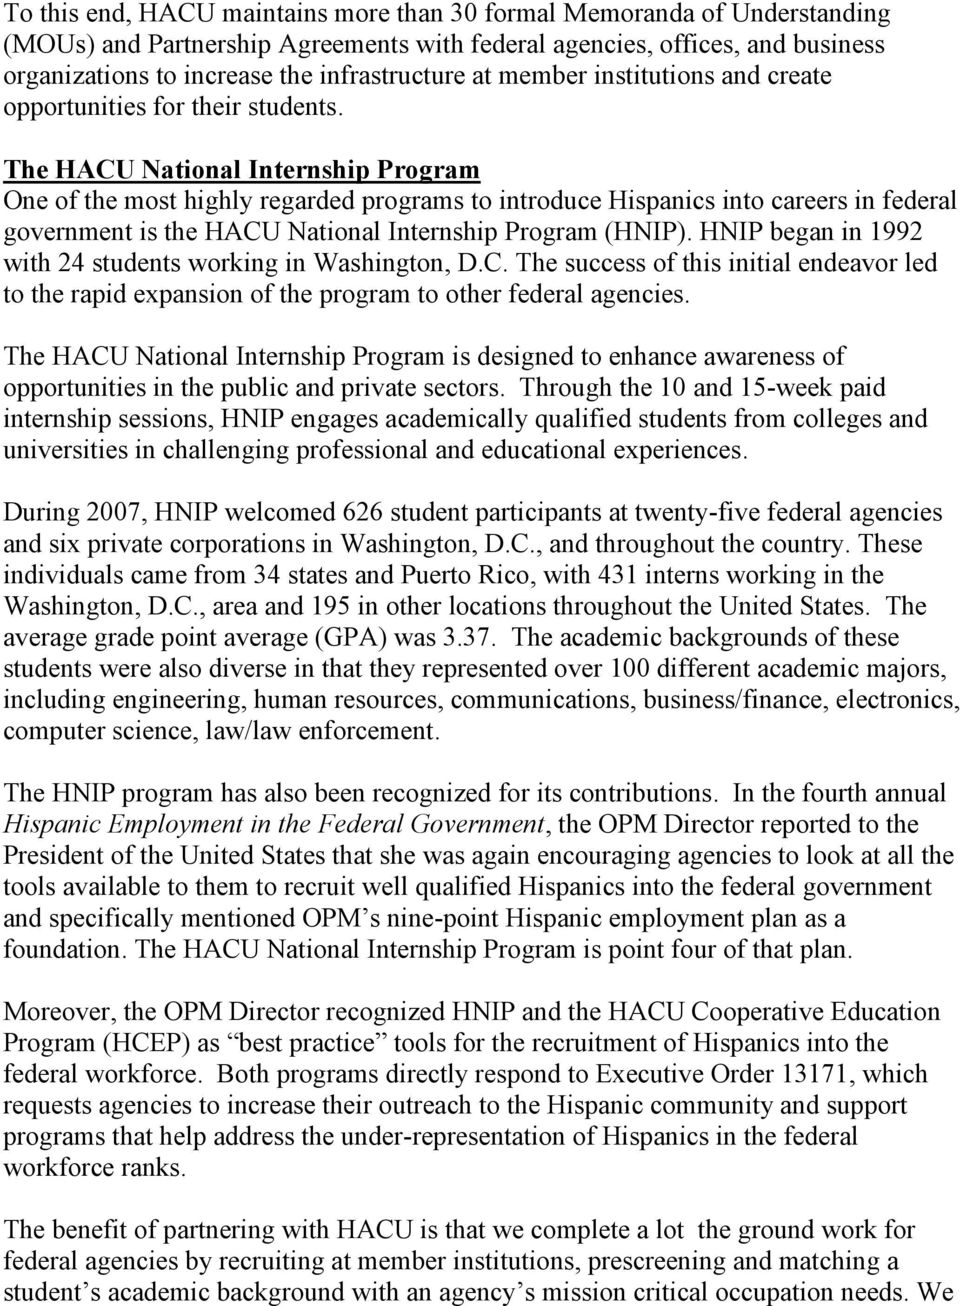 The HACU National Internship Program One of the most highly regarded programs to introduce Hispanics into careers in federal government is the HACU National Internship Program (HNIP).